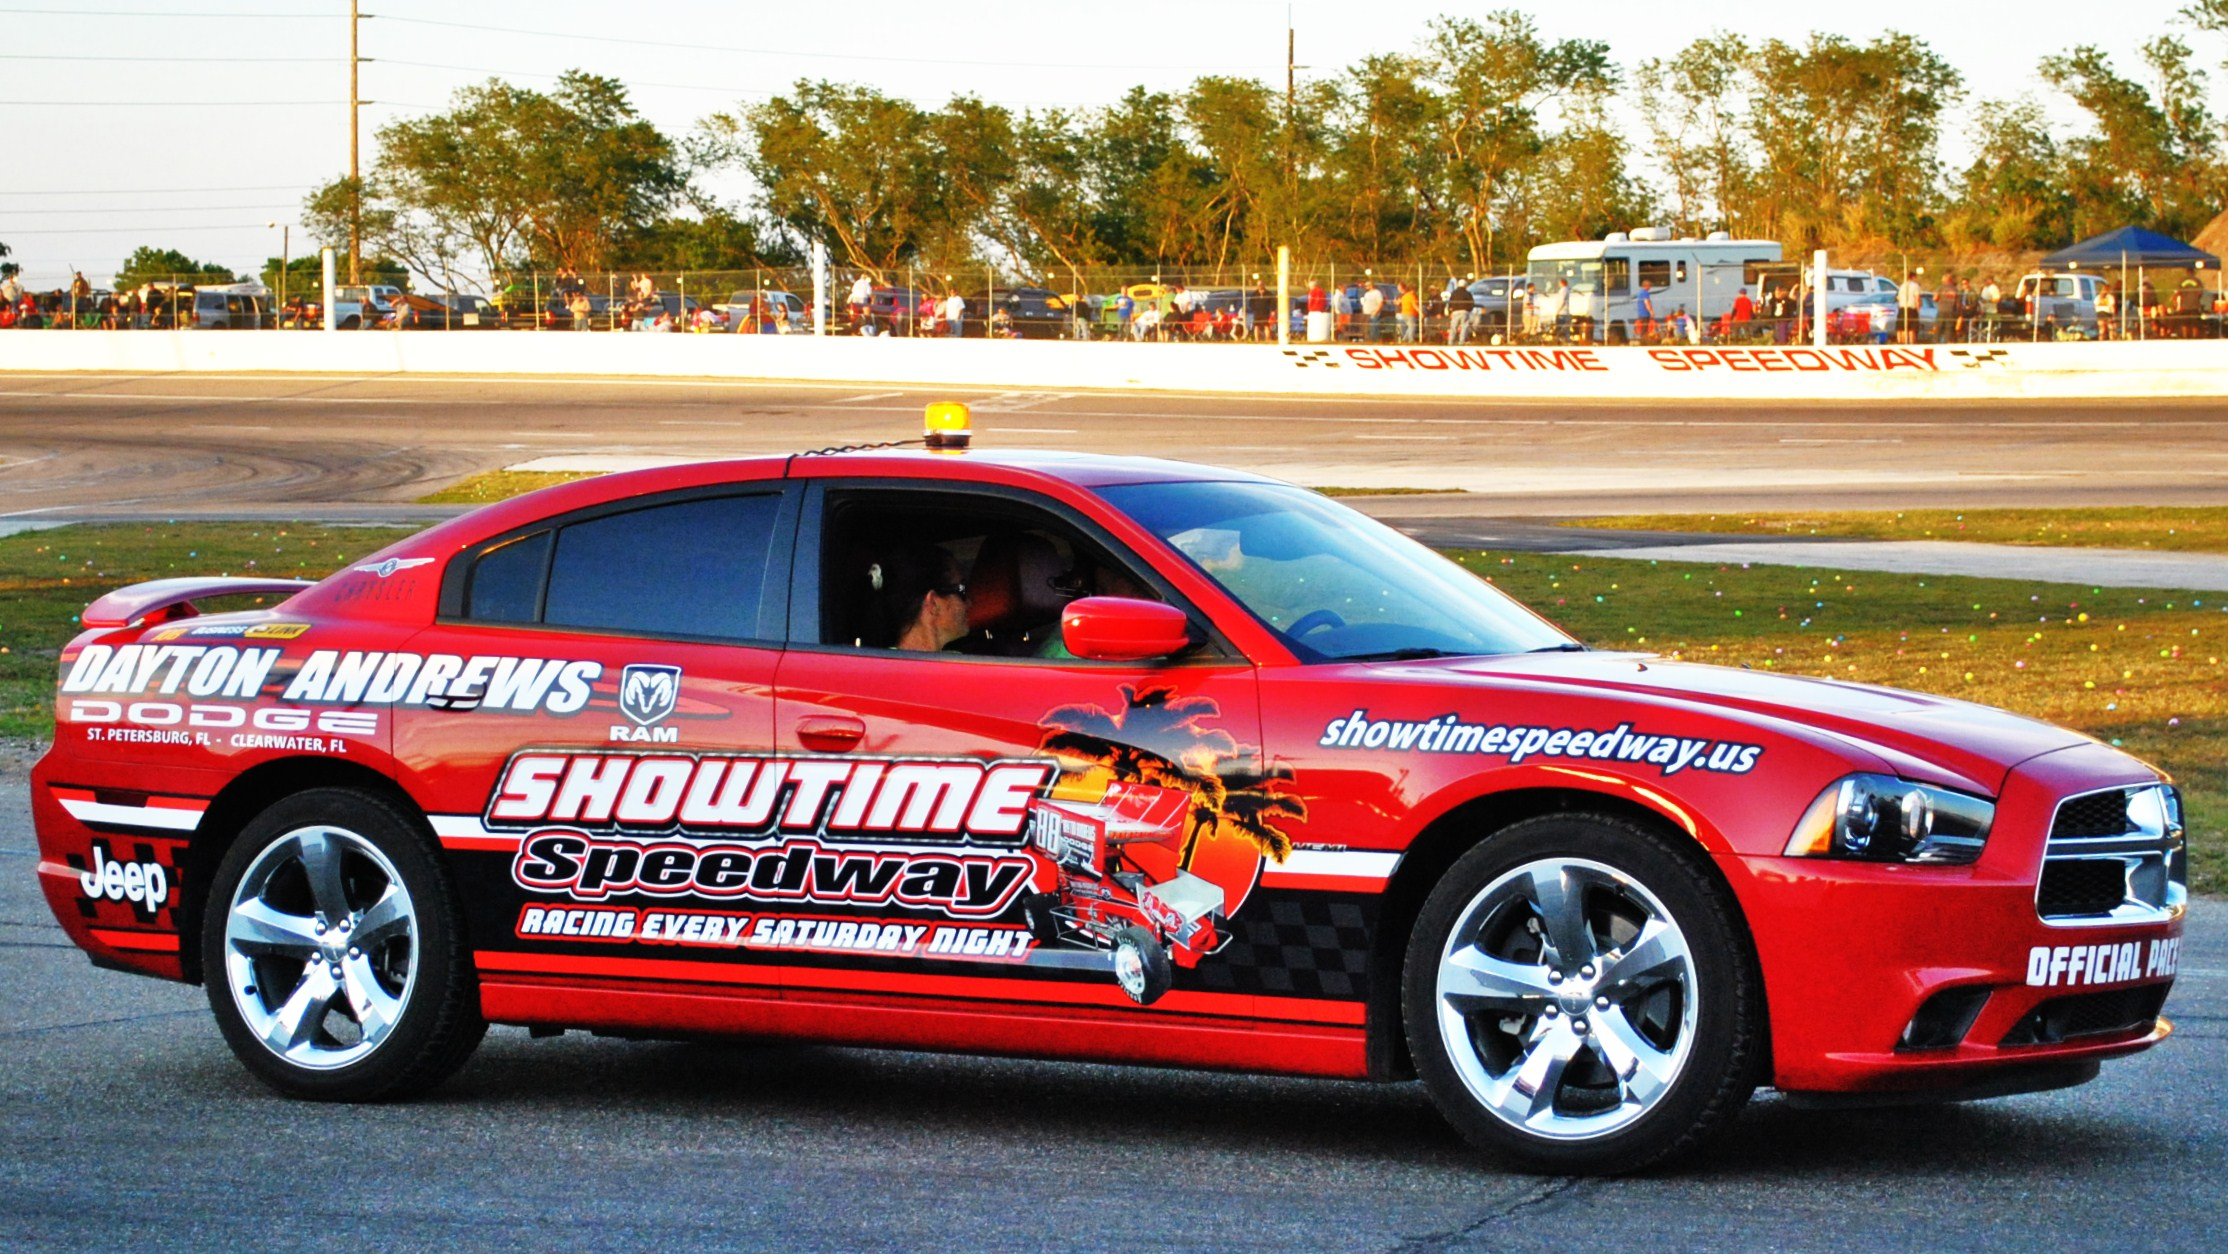 Dayton Andrews Dodge Pace Car - Courtesy of SpeedRacer Photos